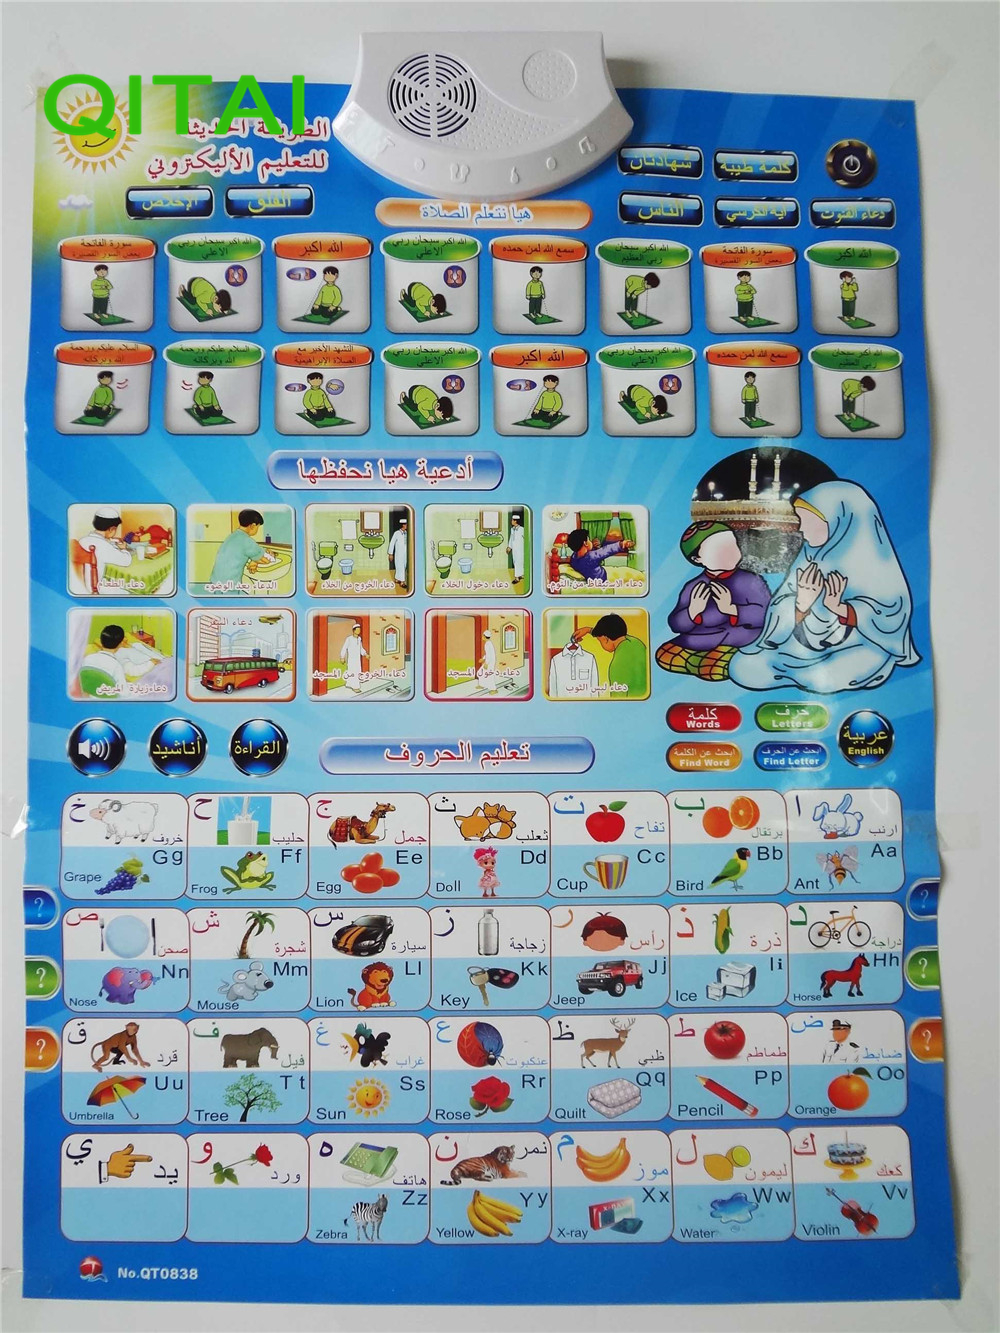 Toys & Hobbies Learning Machines 100% Quality Arabic & English Language Phonic Wall Hanging Chart Muslim Talking Poster Present Quran For Kids Learning Education Koran Toys